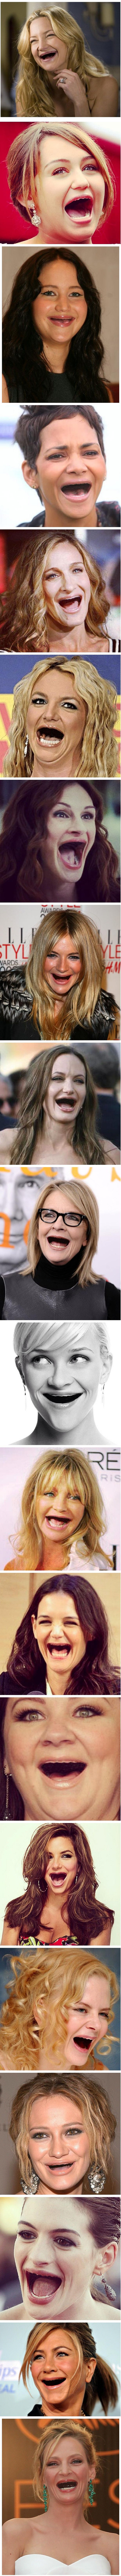 Celebrities without teeth. You're welcome. The most hilarious thing I've ever seen.